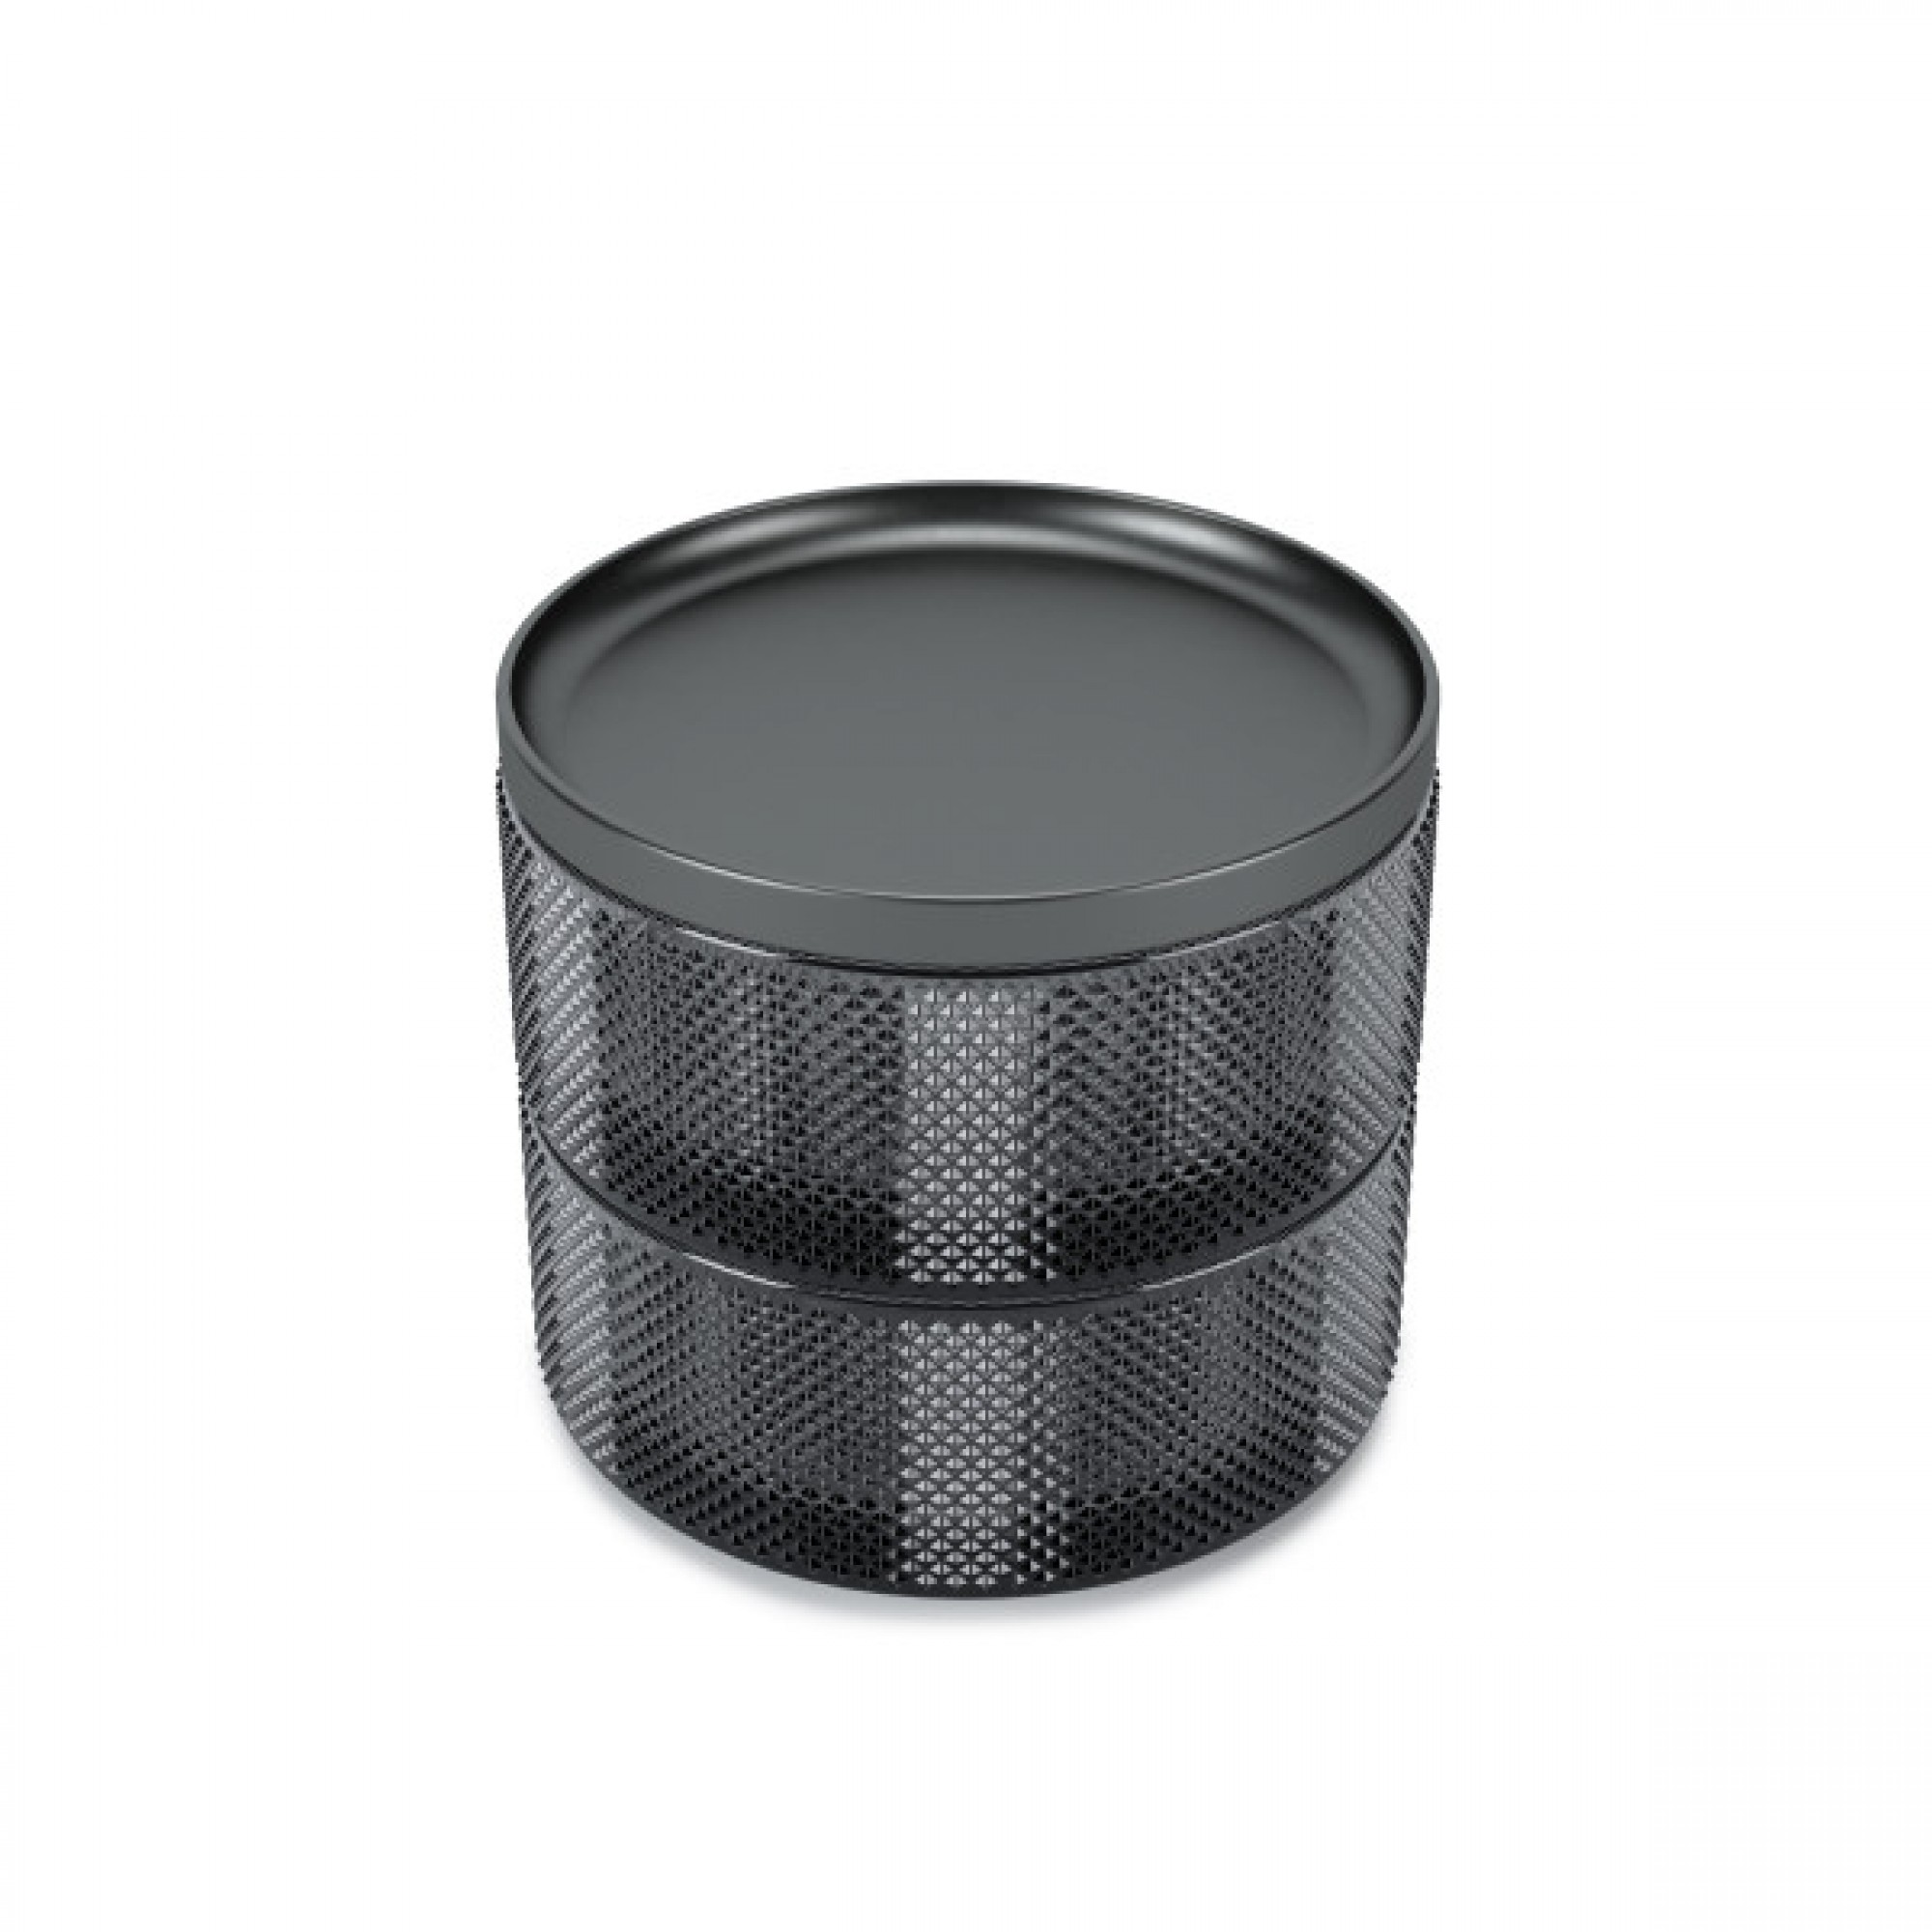 Jewelry box, made of fume glass, with two levels and metal lid - TESORA